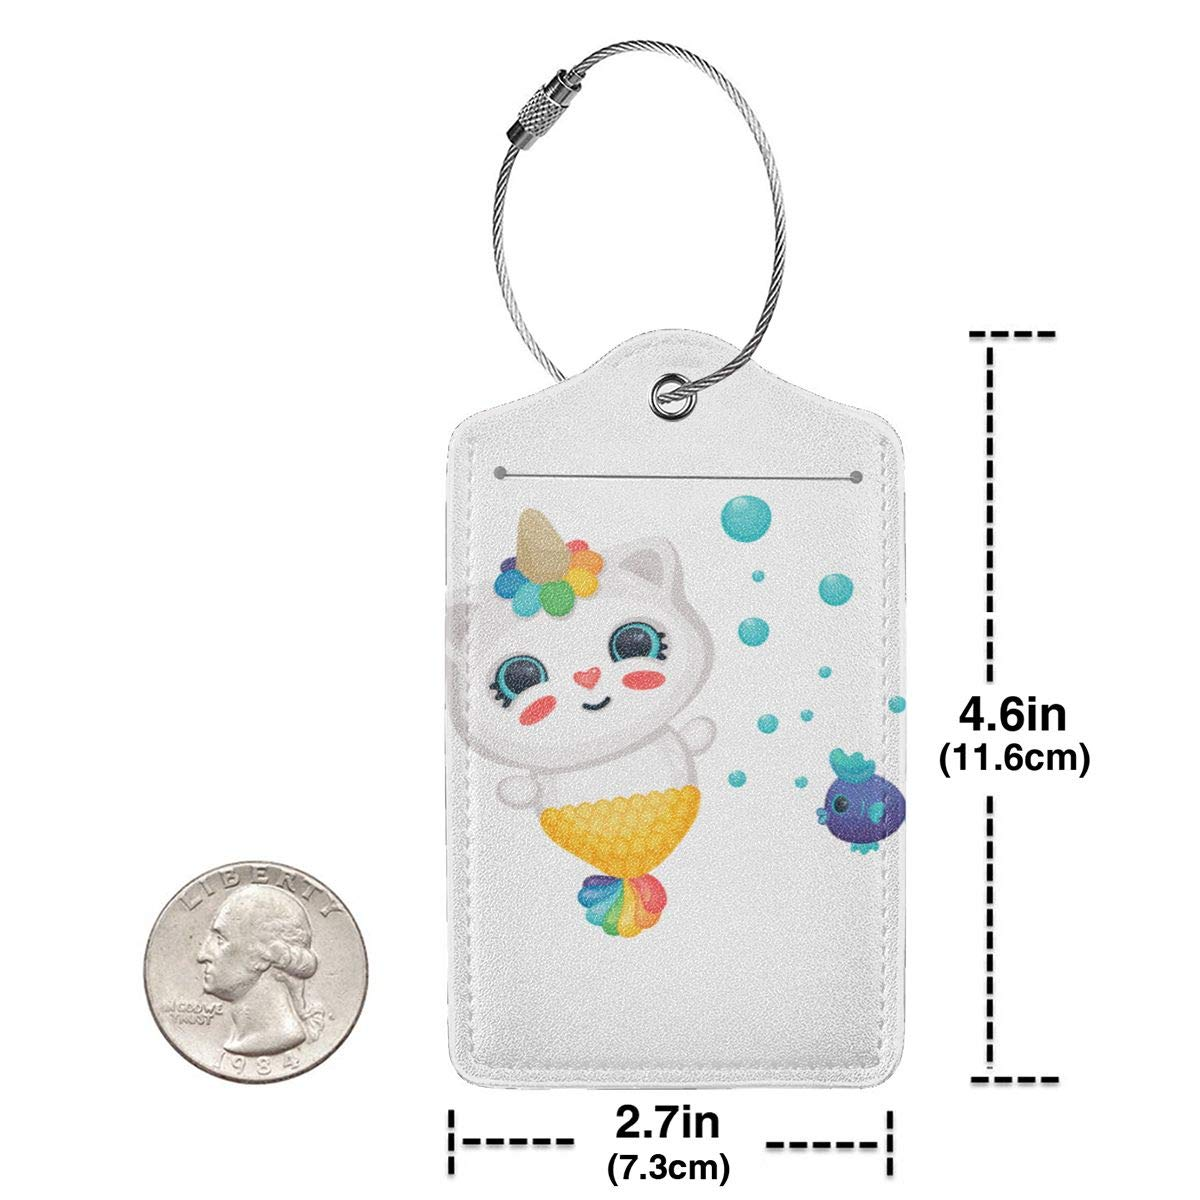 Lucaeat Cat With Unicorn Horn Luggage Tag PU Leather Bag Tag Travel Suitcases ID